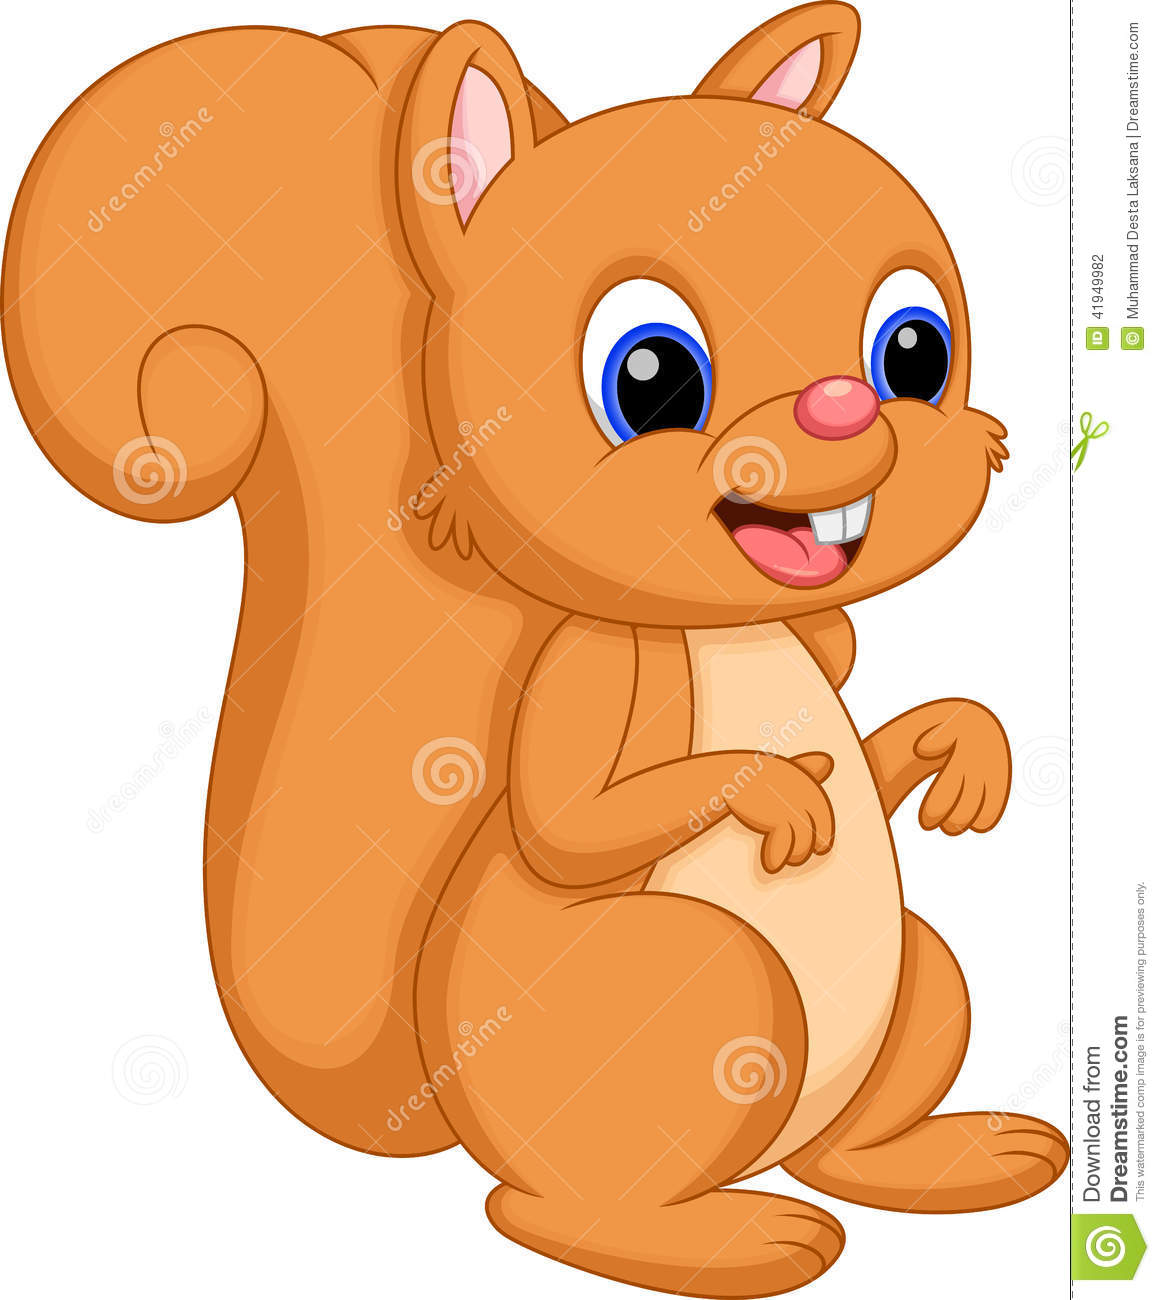 Cute Squirrel Clipart Cute Squirrel Cartoon With A